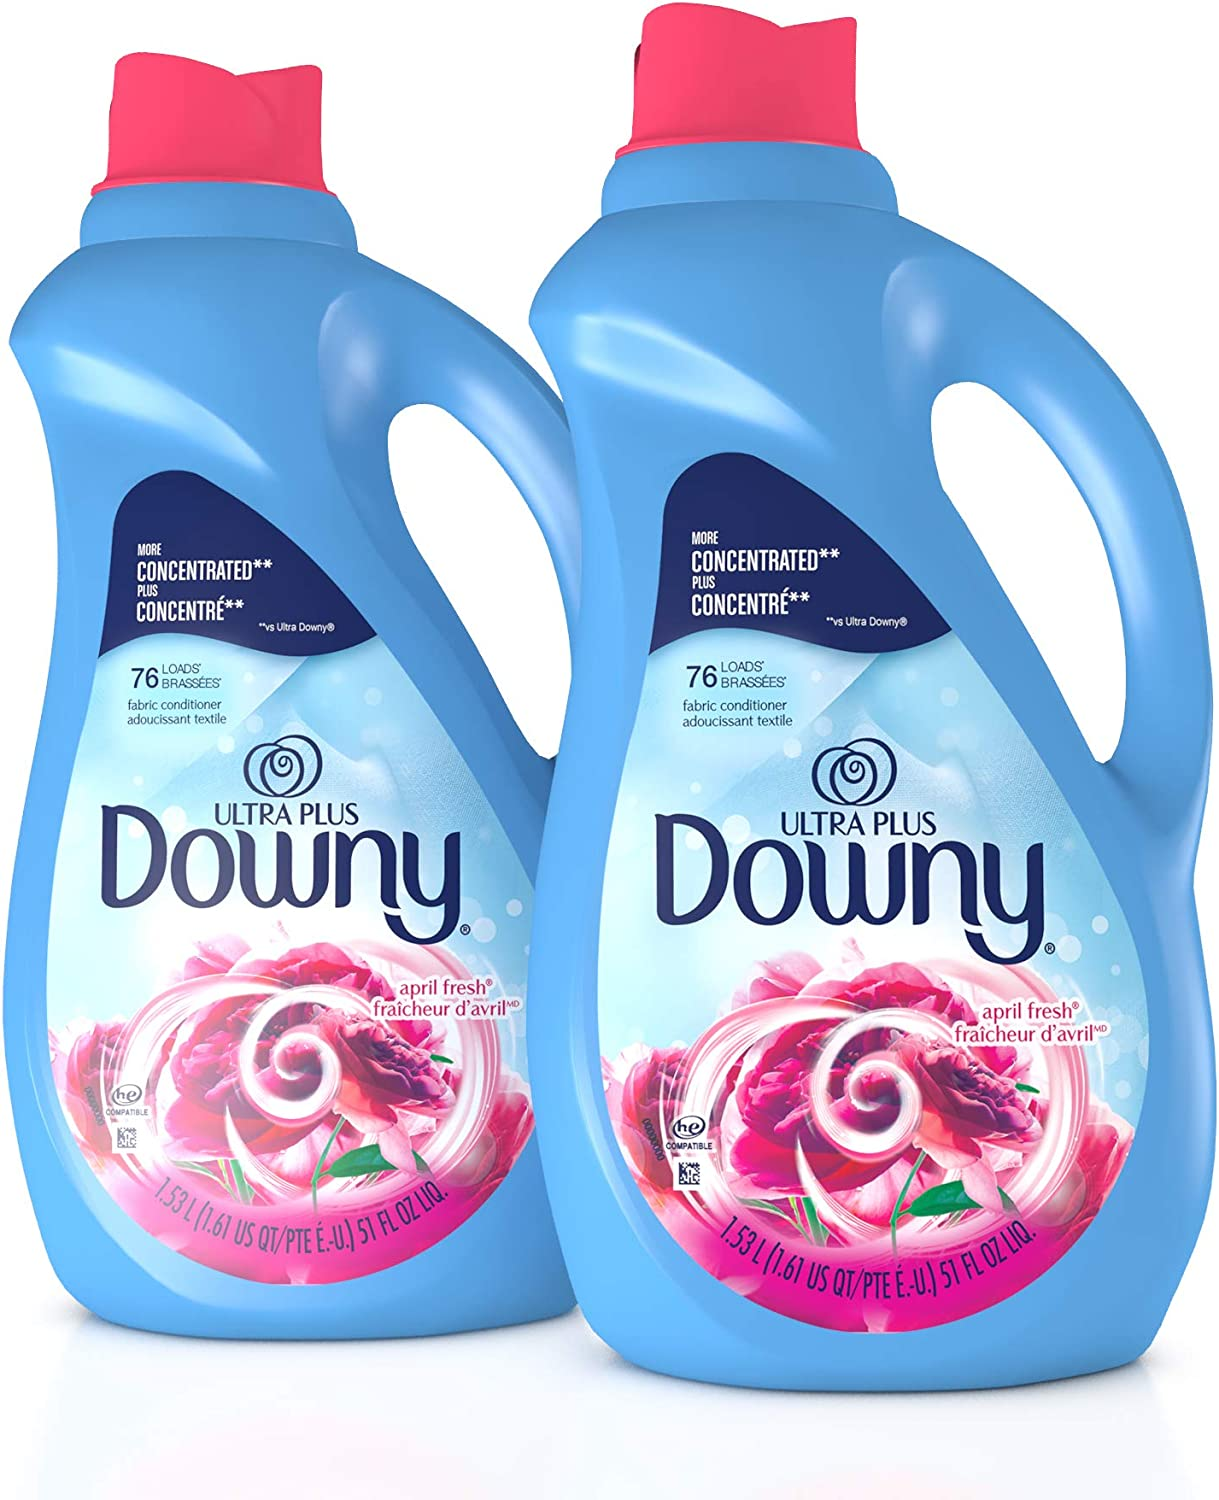 Downy Ultra Plus Liquid Fabric Conditioner (Fabric Softener), April Fresh, Concentrated, 51 oz Bottles, 2 Pack, 152 Loads Total